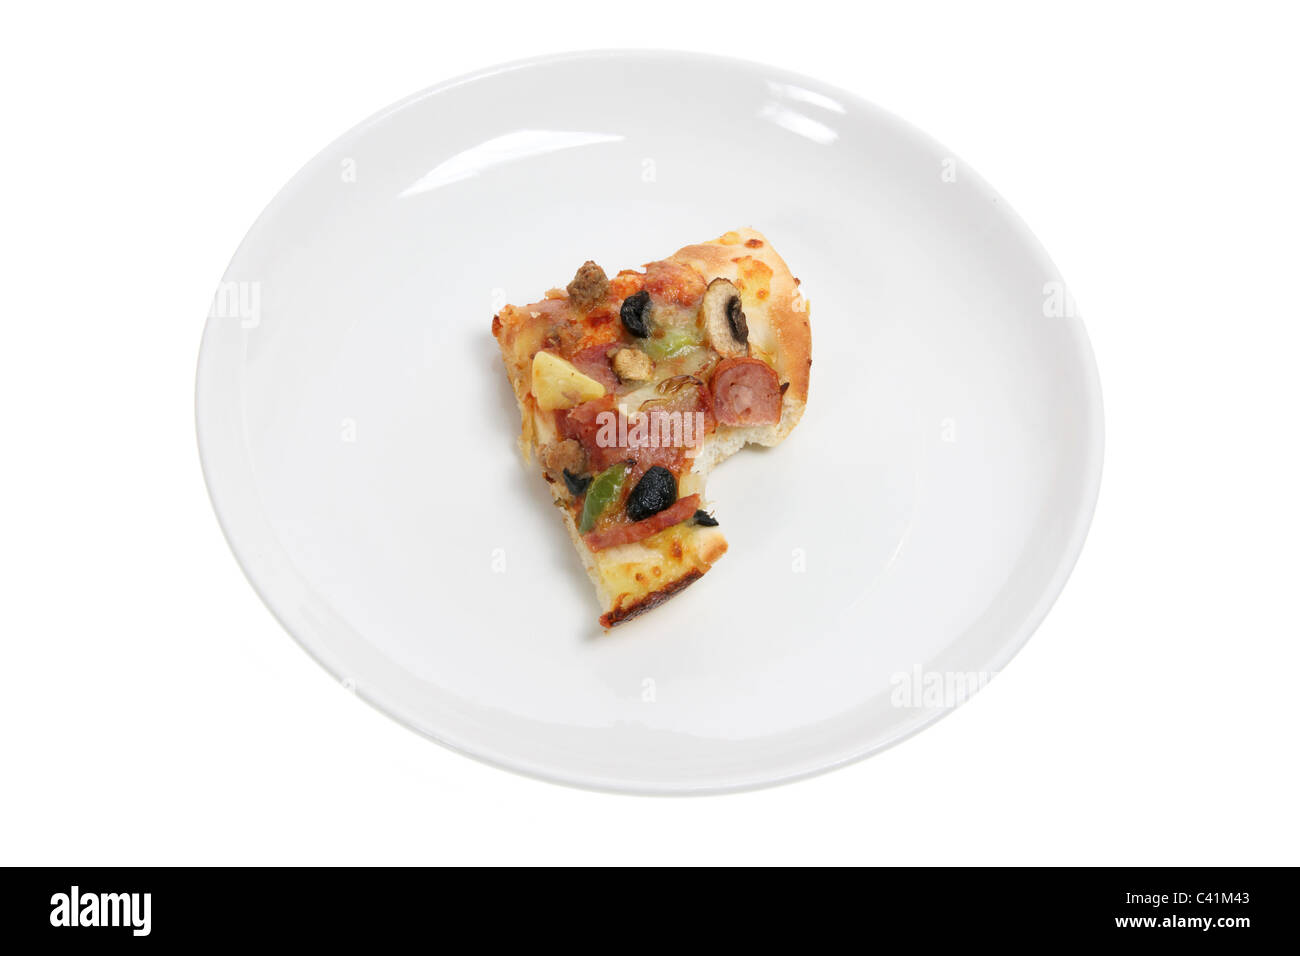 Slice of Pizza on Plate - Stock Image